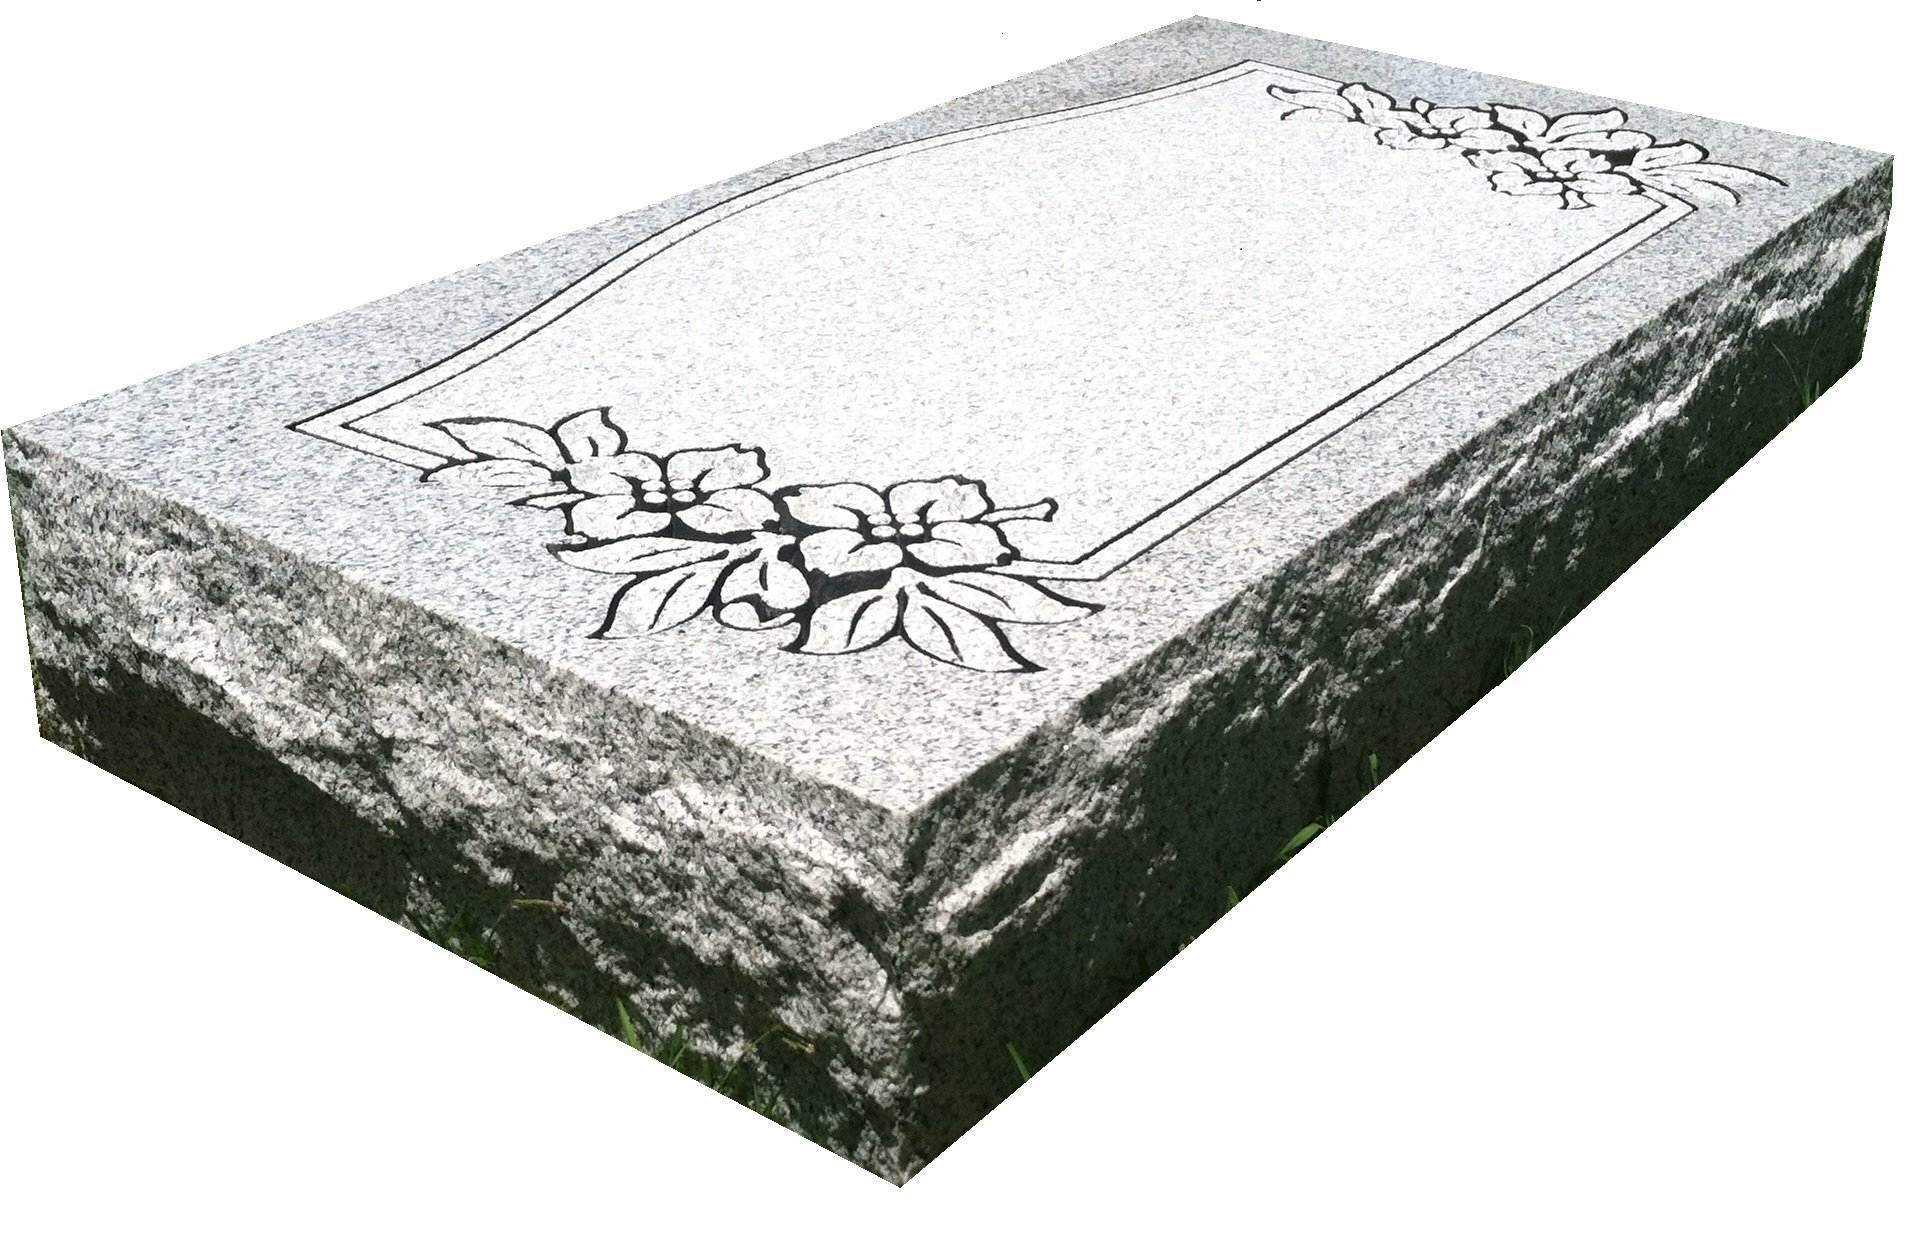 Upstate Stone Works Granite Headstone 24''x12''x4'' with Design (8 Options) by Upstate Stone Works